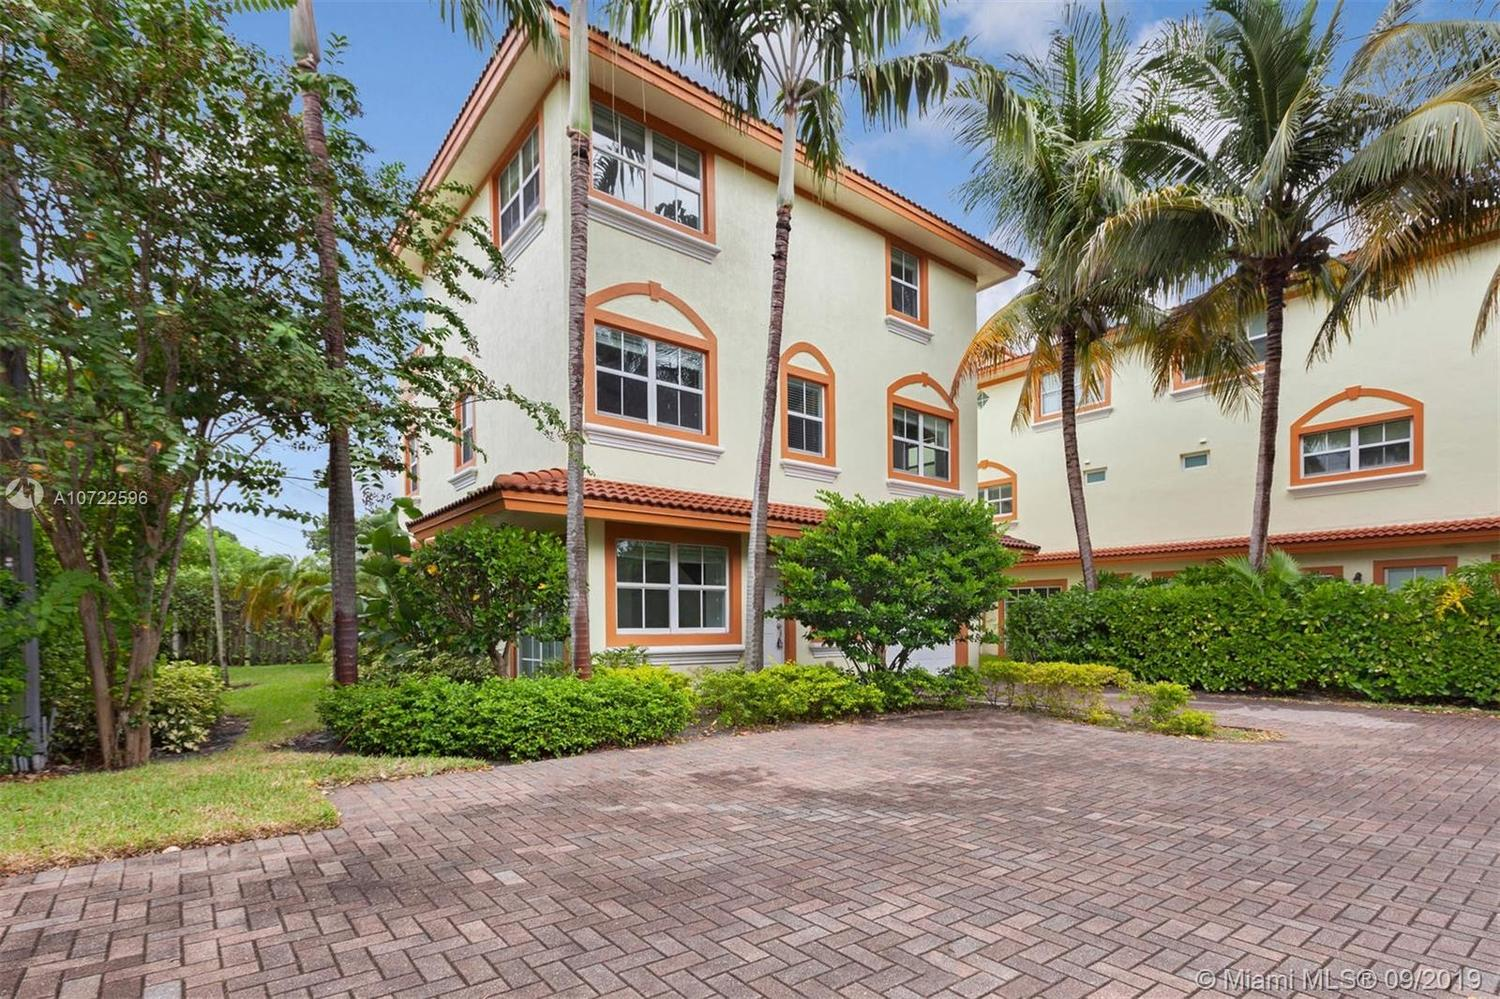 625 Northeast 8th Avenue, Unit 2 Fort Lauderdale, FL 33304